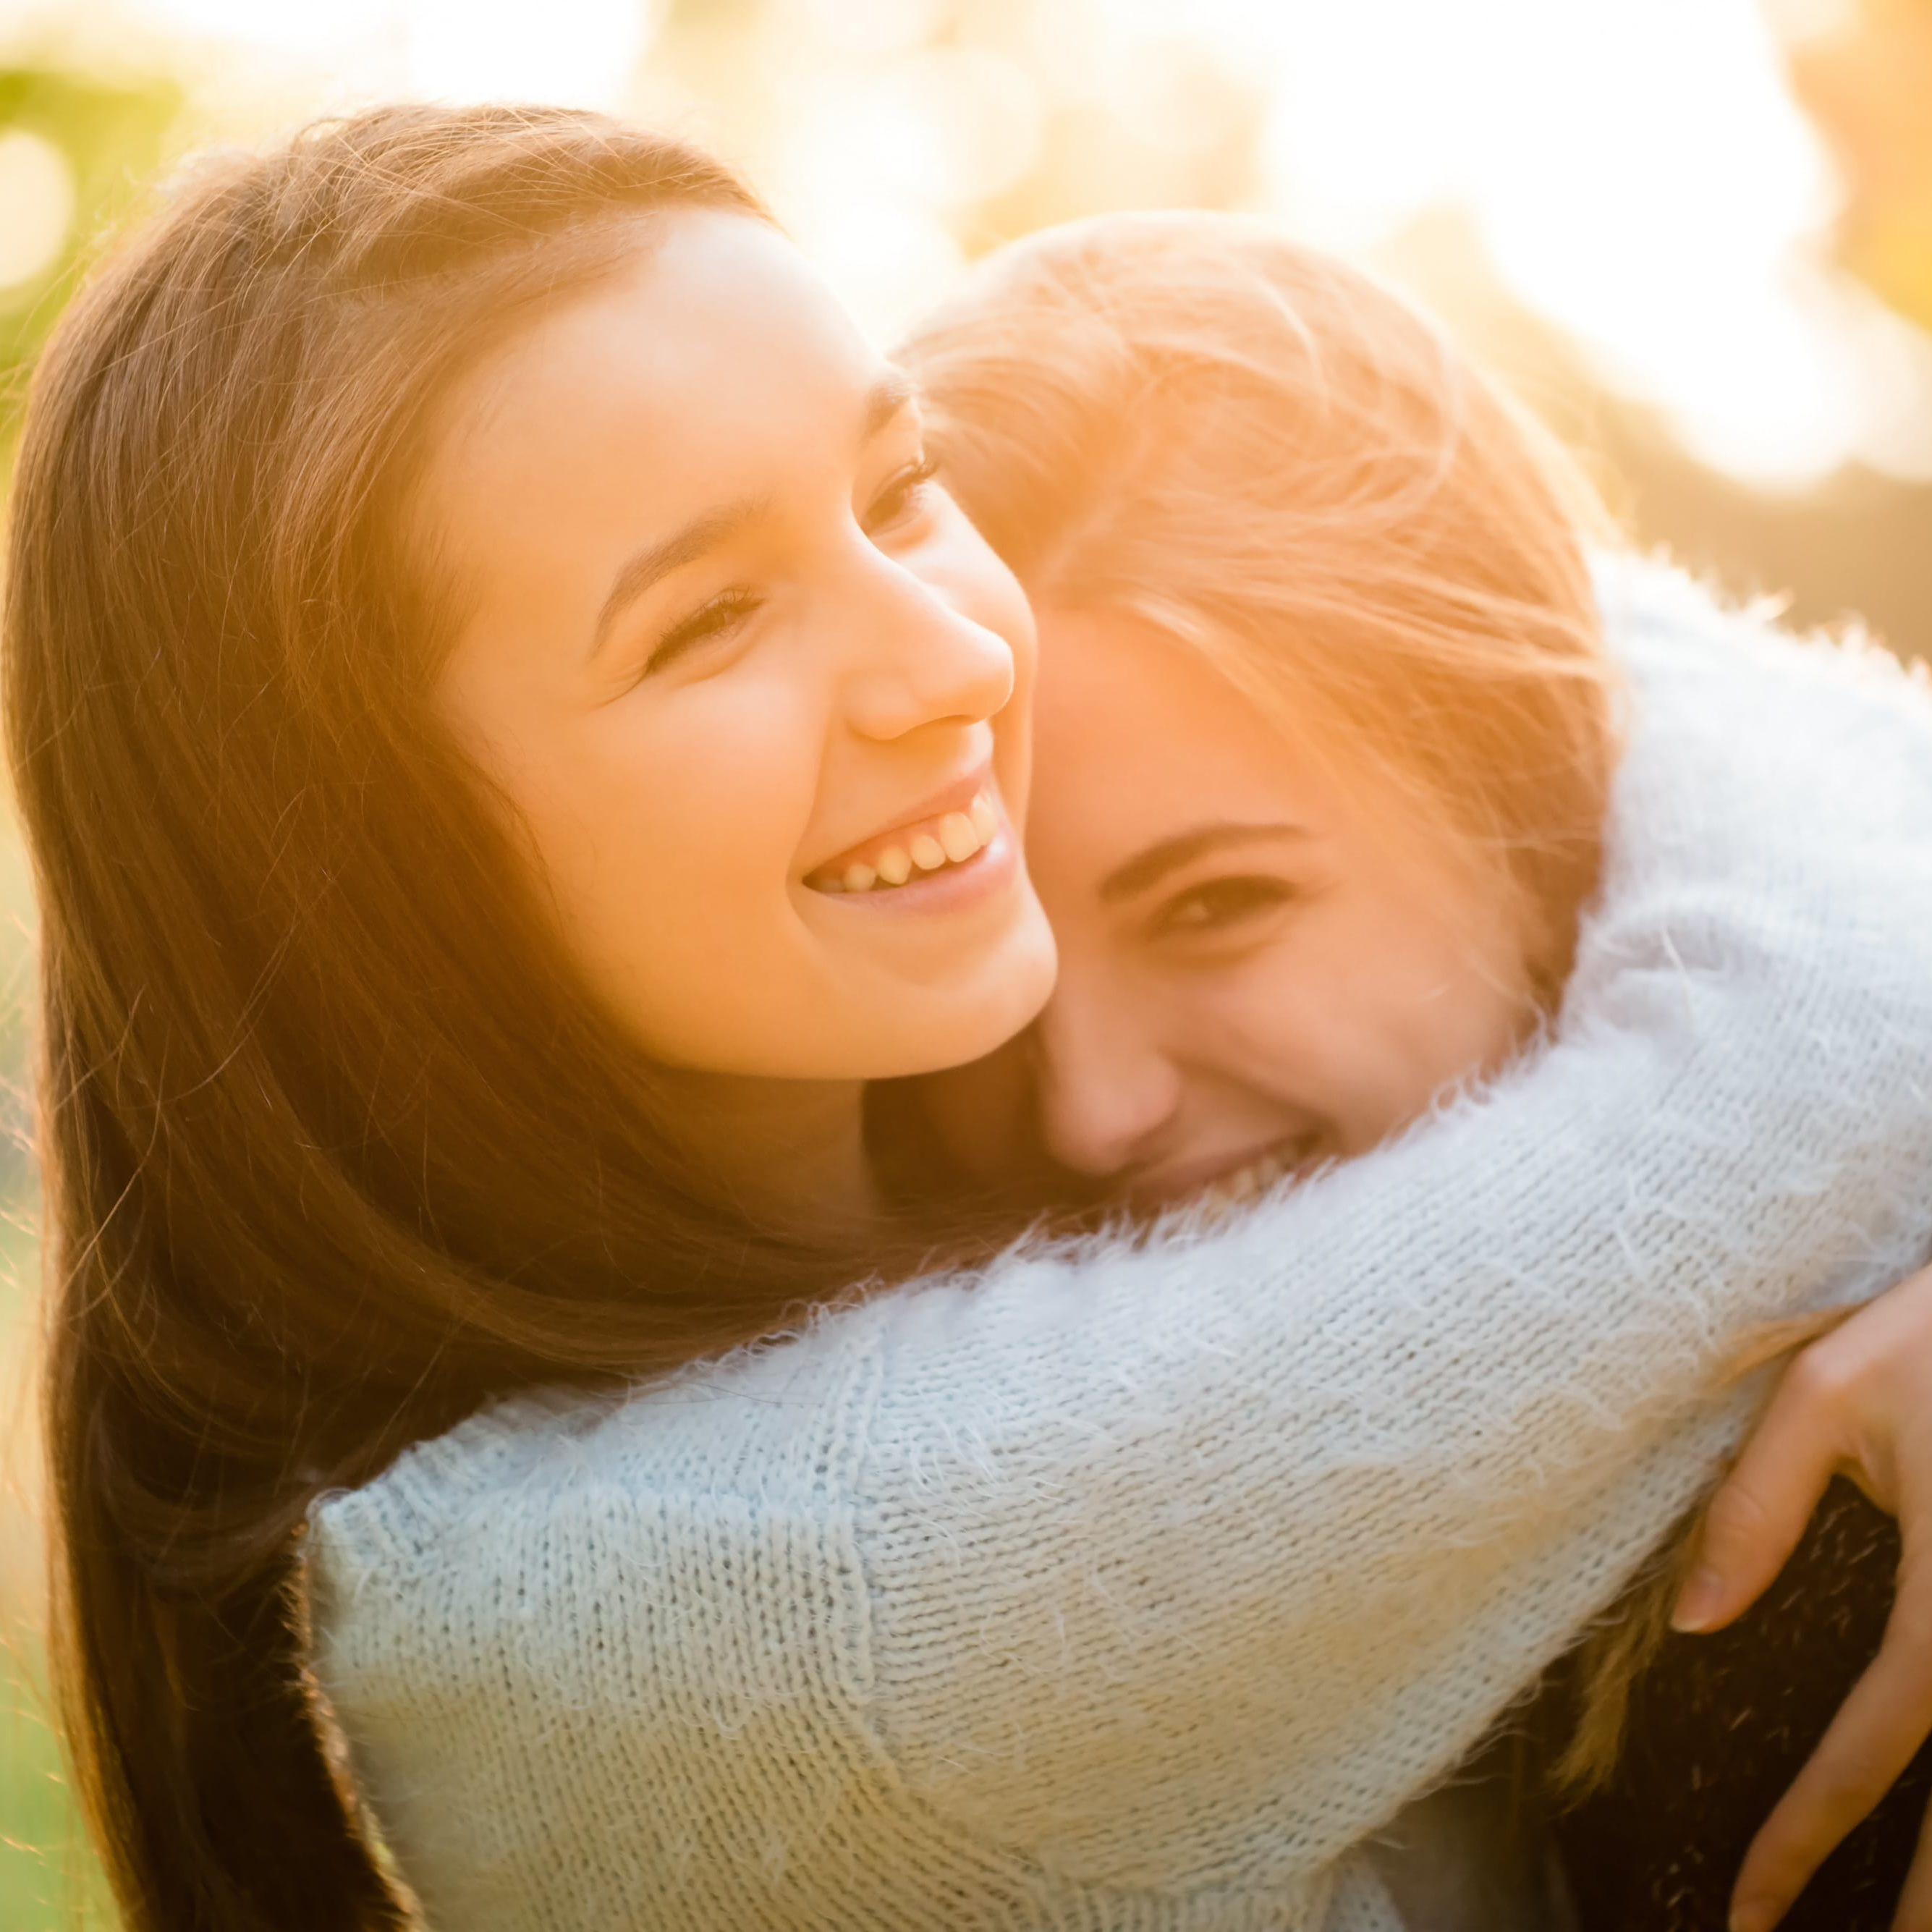 Two friends -  teenage girls hugging  outdoor in autumn at sunset